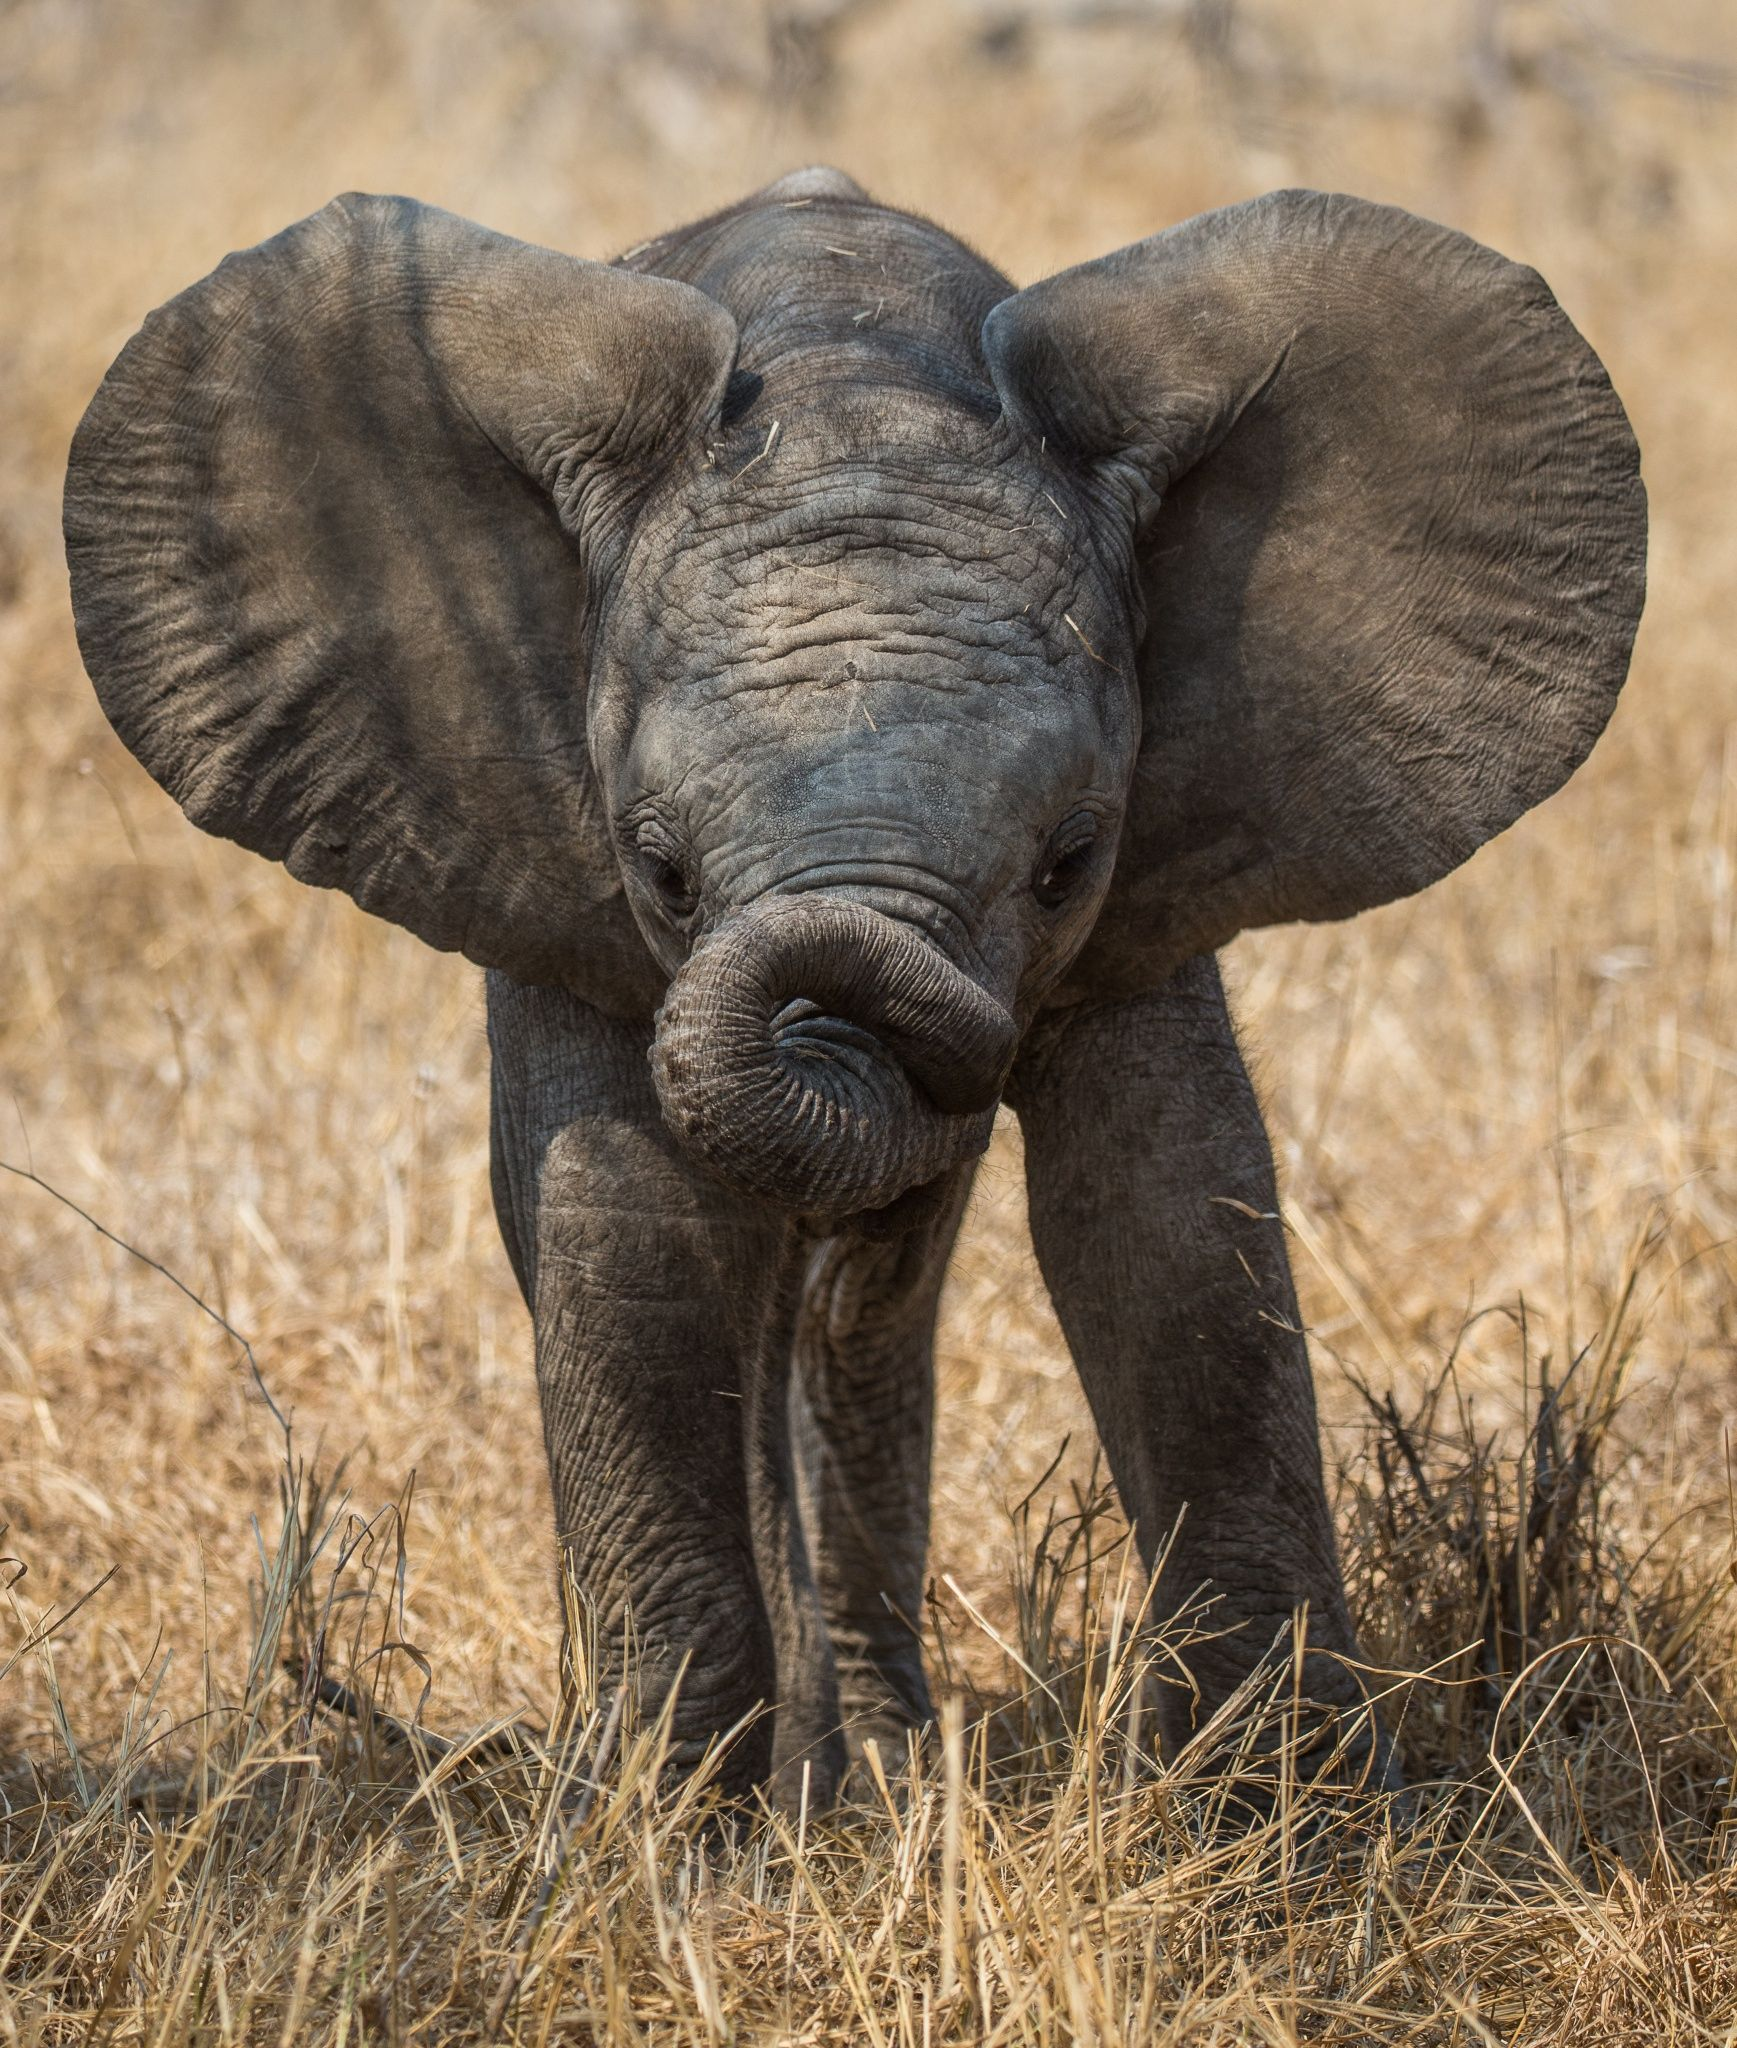 Trunk trouble by Brian Scott on 500px